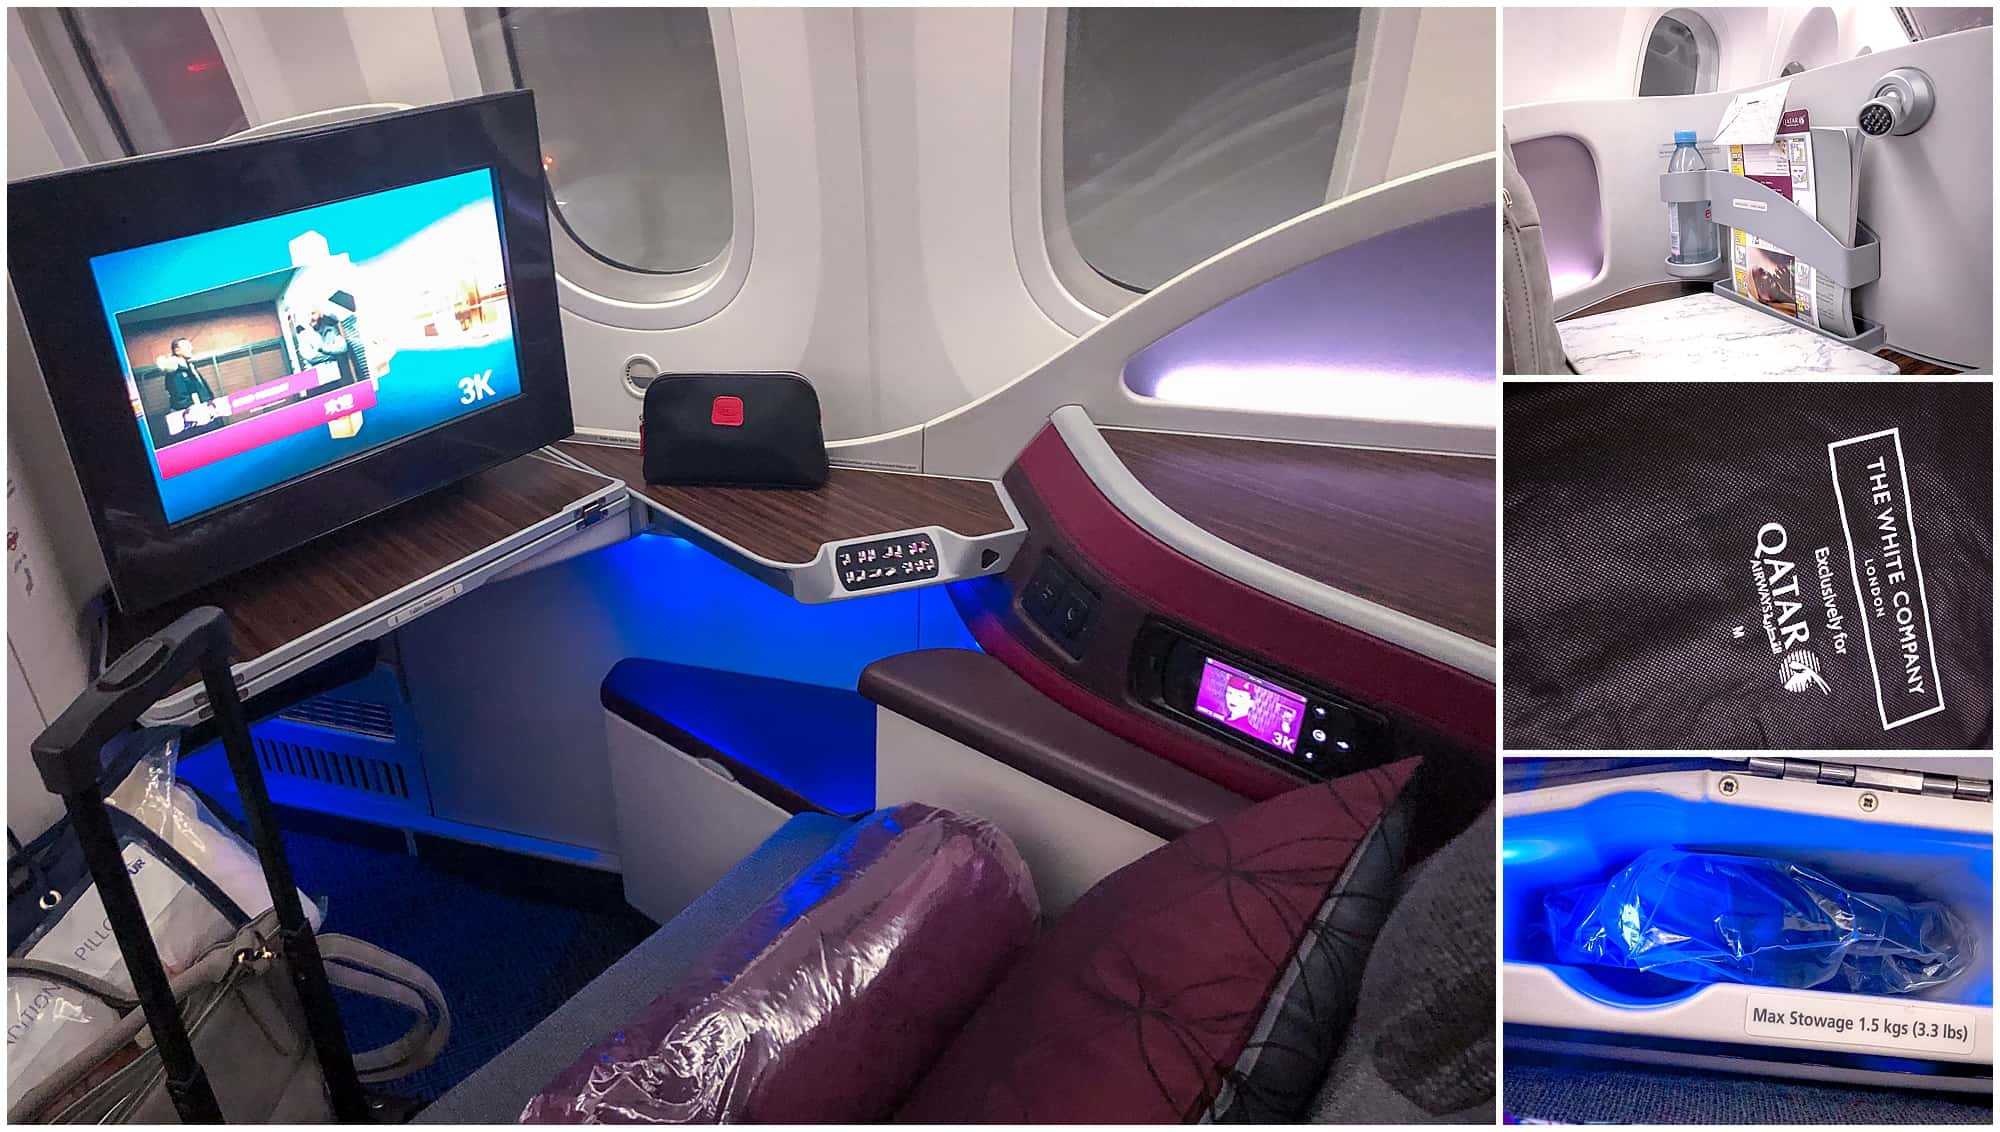 Qatar Airways Business Class Seat Dreamliner Doha Cardiff